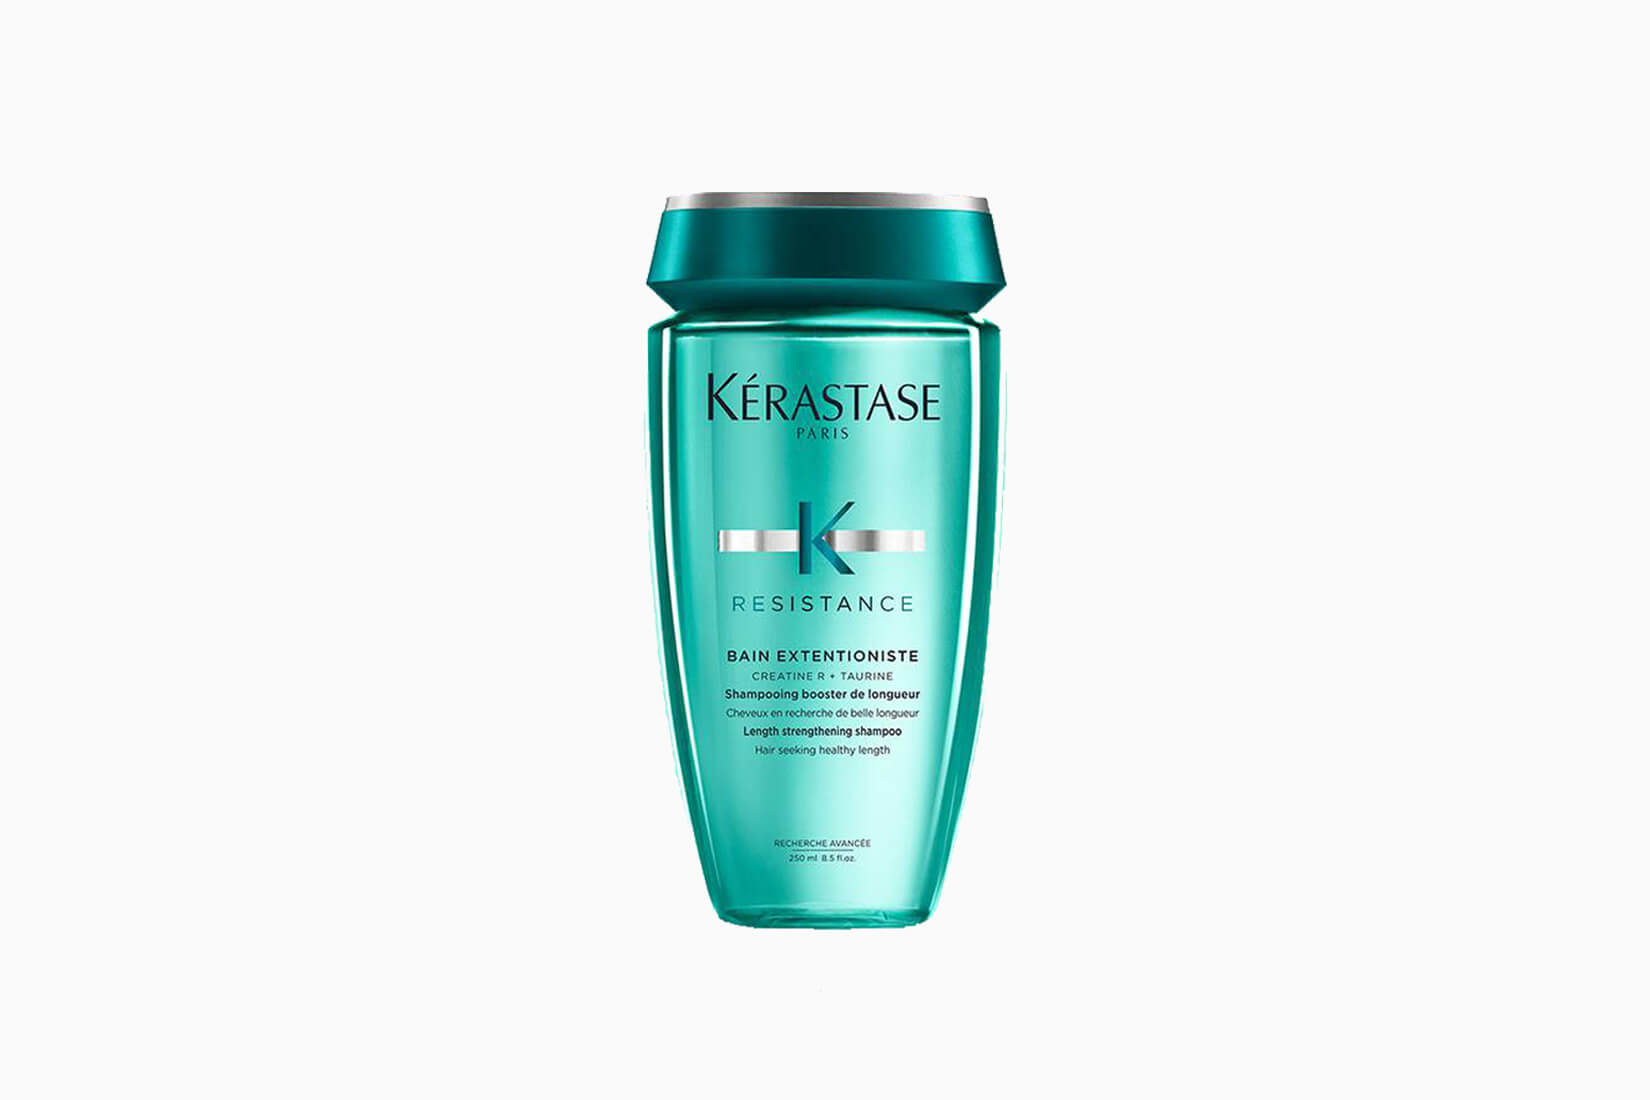 best hair growth shampoo women kerastase review - Luxe Digital